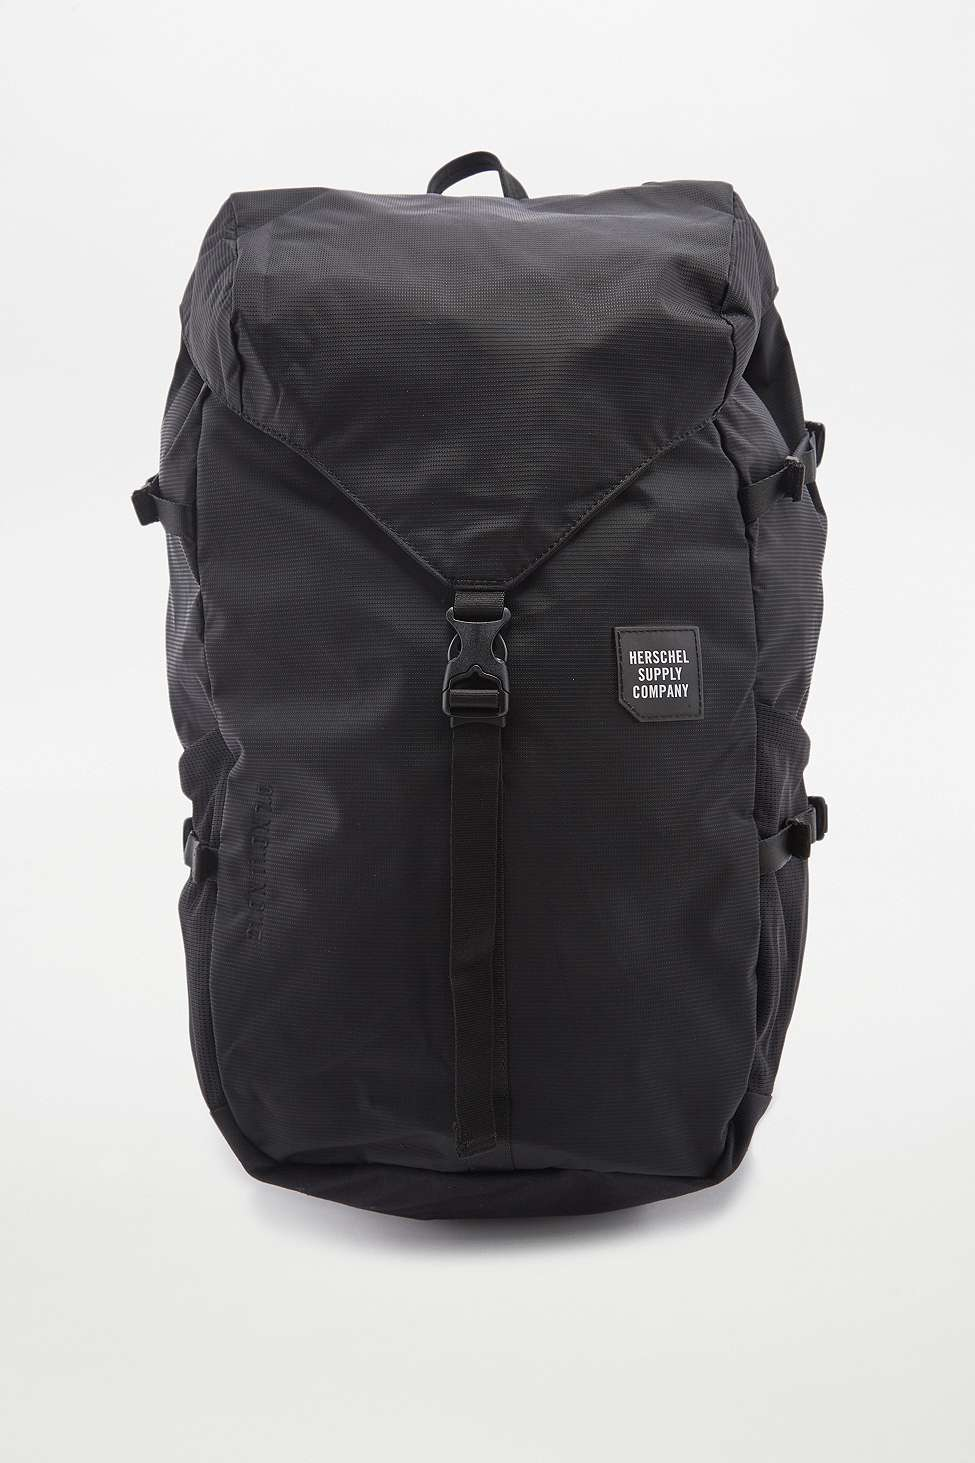 Herschel Supply co. Barlow Large Black Backpack | Urban Outfitters